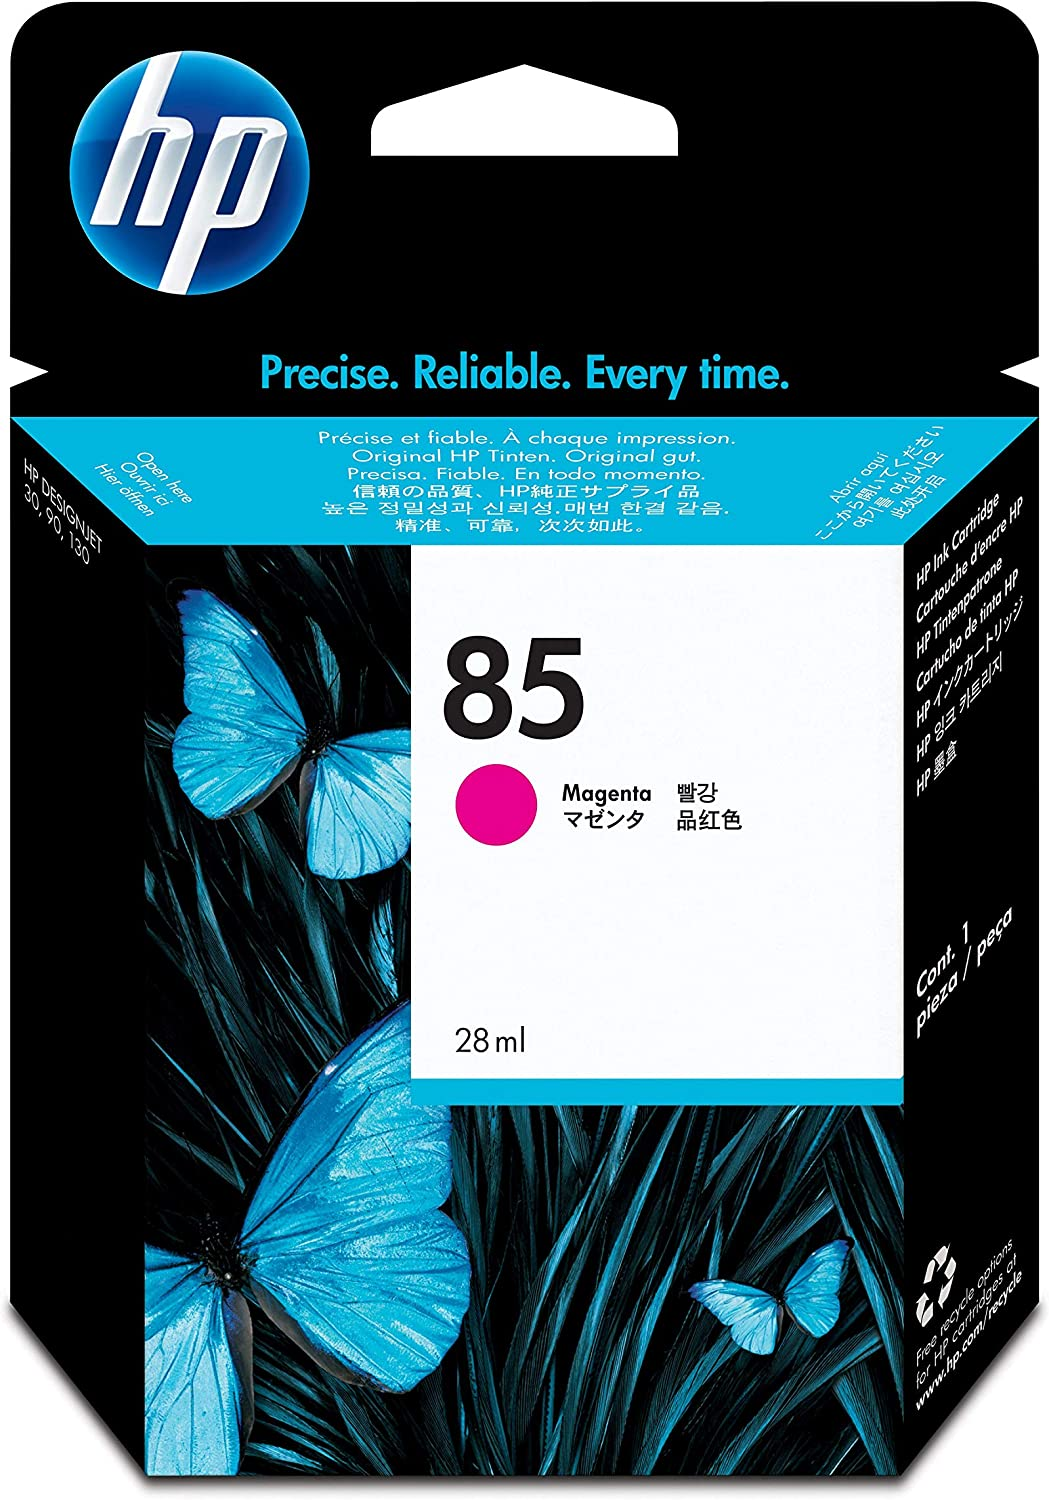 HP 85 Magenta 28-ml Genuine Ink Cartridge (C9426A) for DesignJet 130, 90 & 30 Large Format Printers